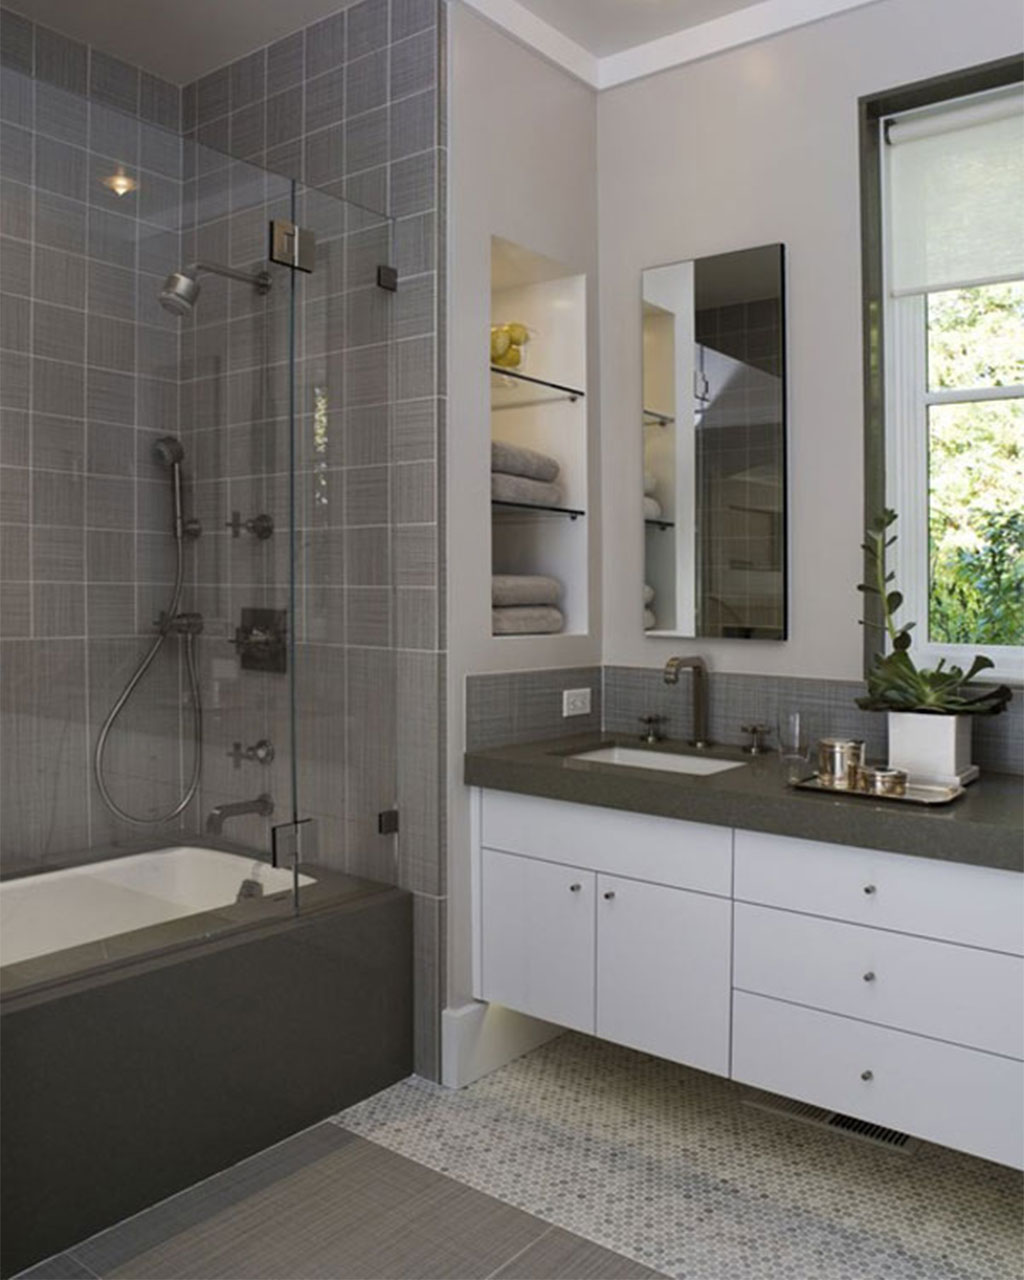 Tantalizing Showering Area also Lush Vanity Plus Shelve For Small Bathroom Remodels